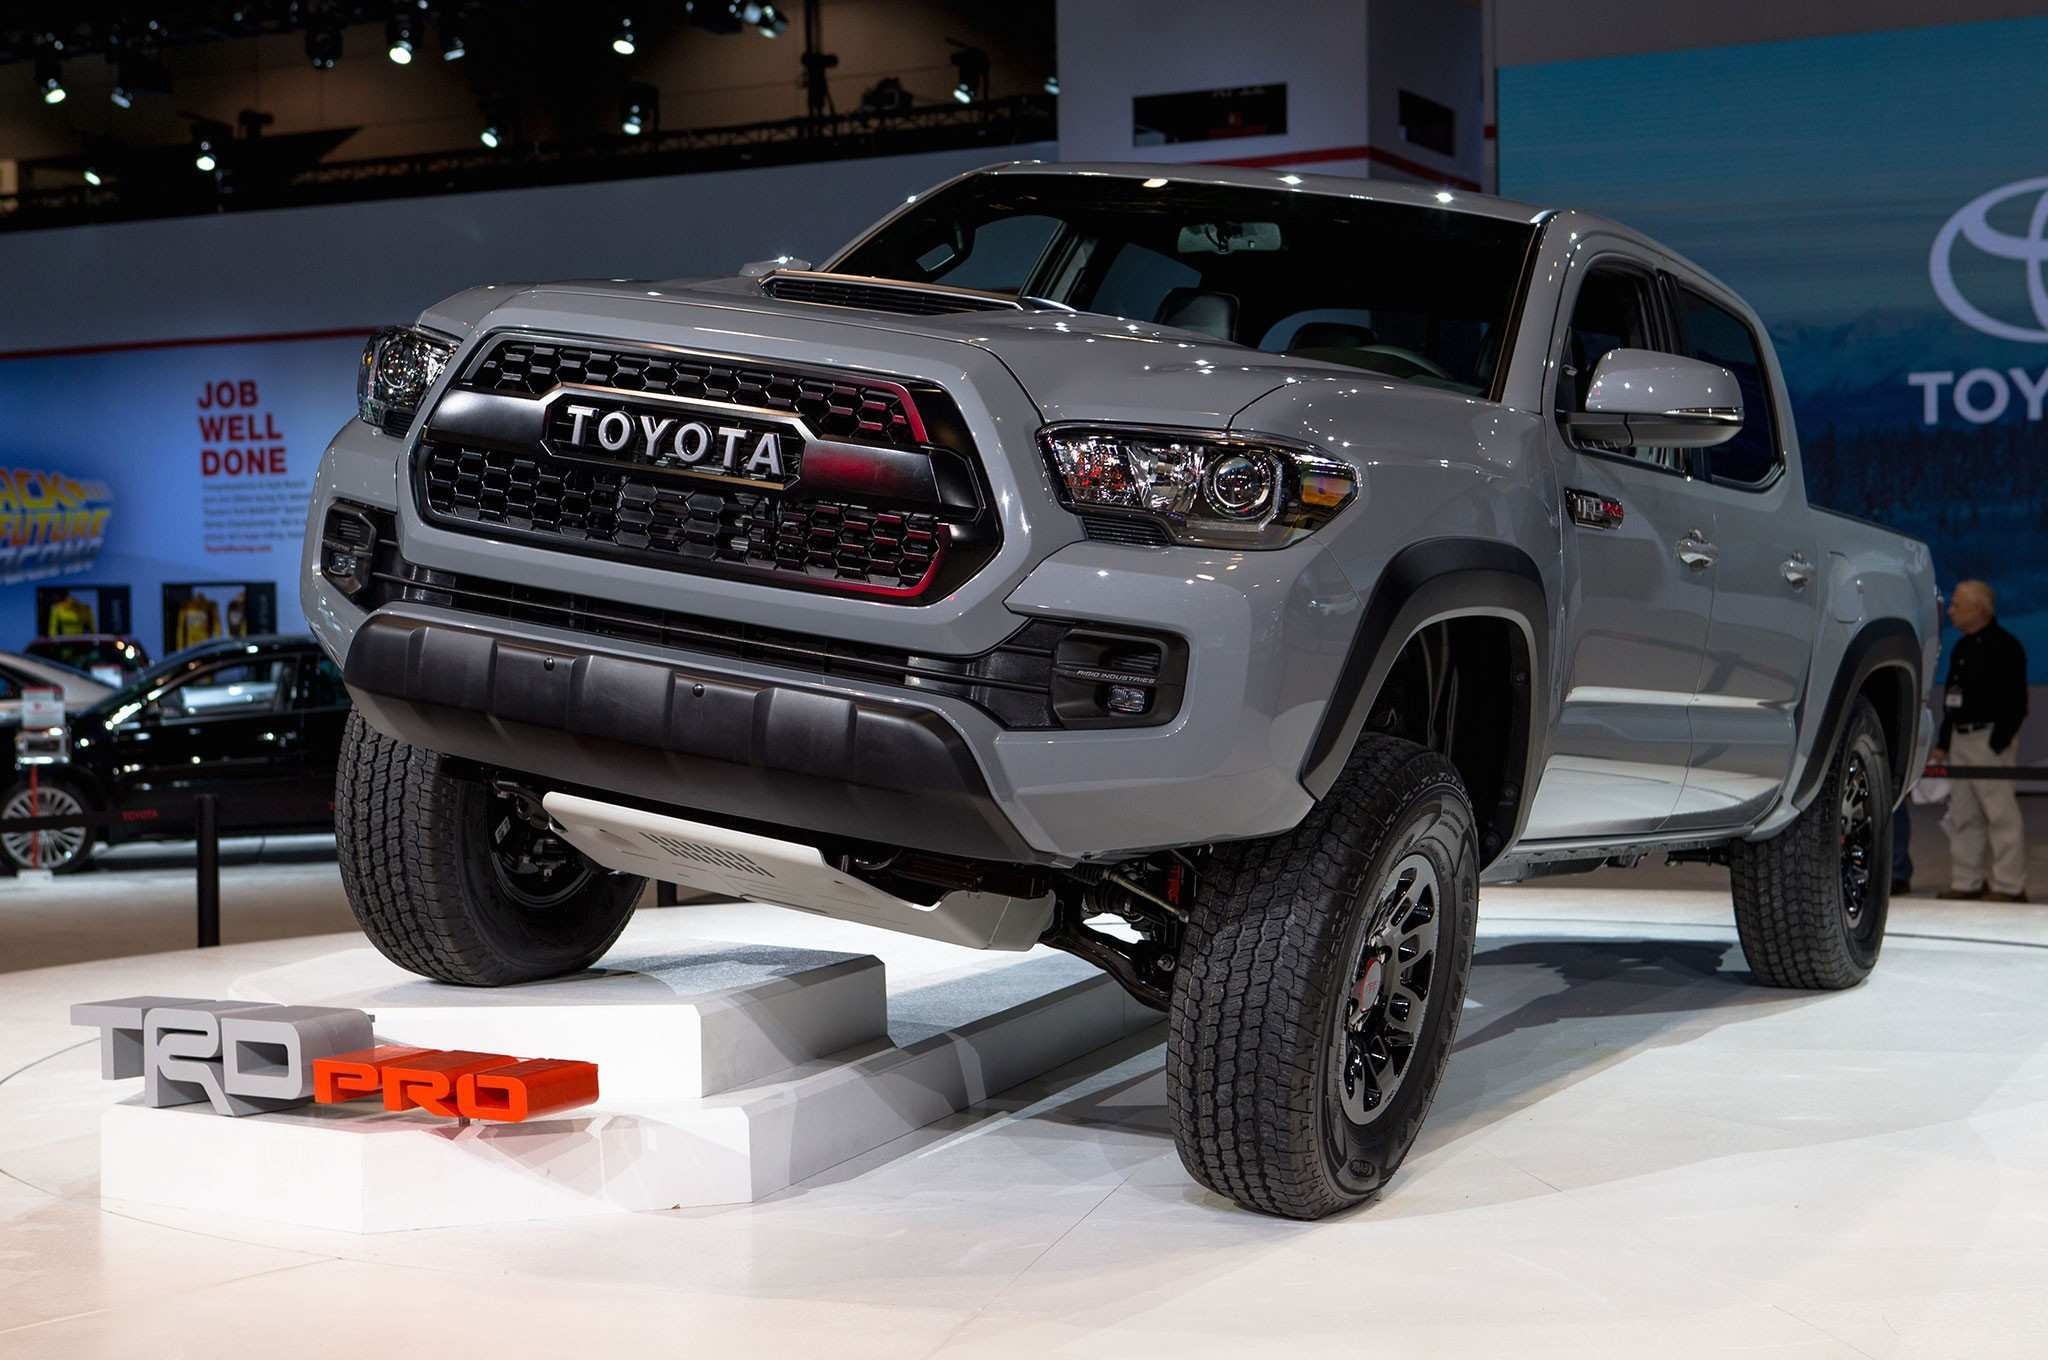 81 Concept of Toyota Hilux 2020 Pictures with Toyota Hilux 2020